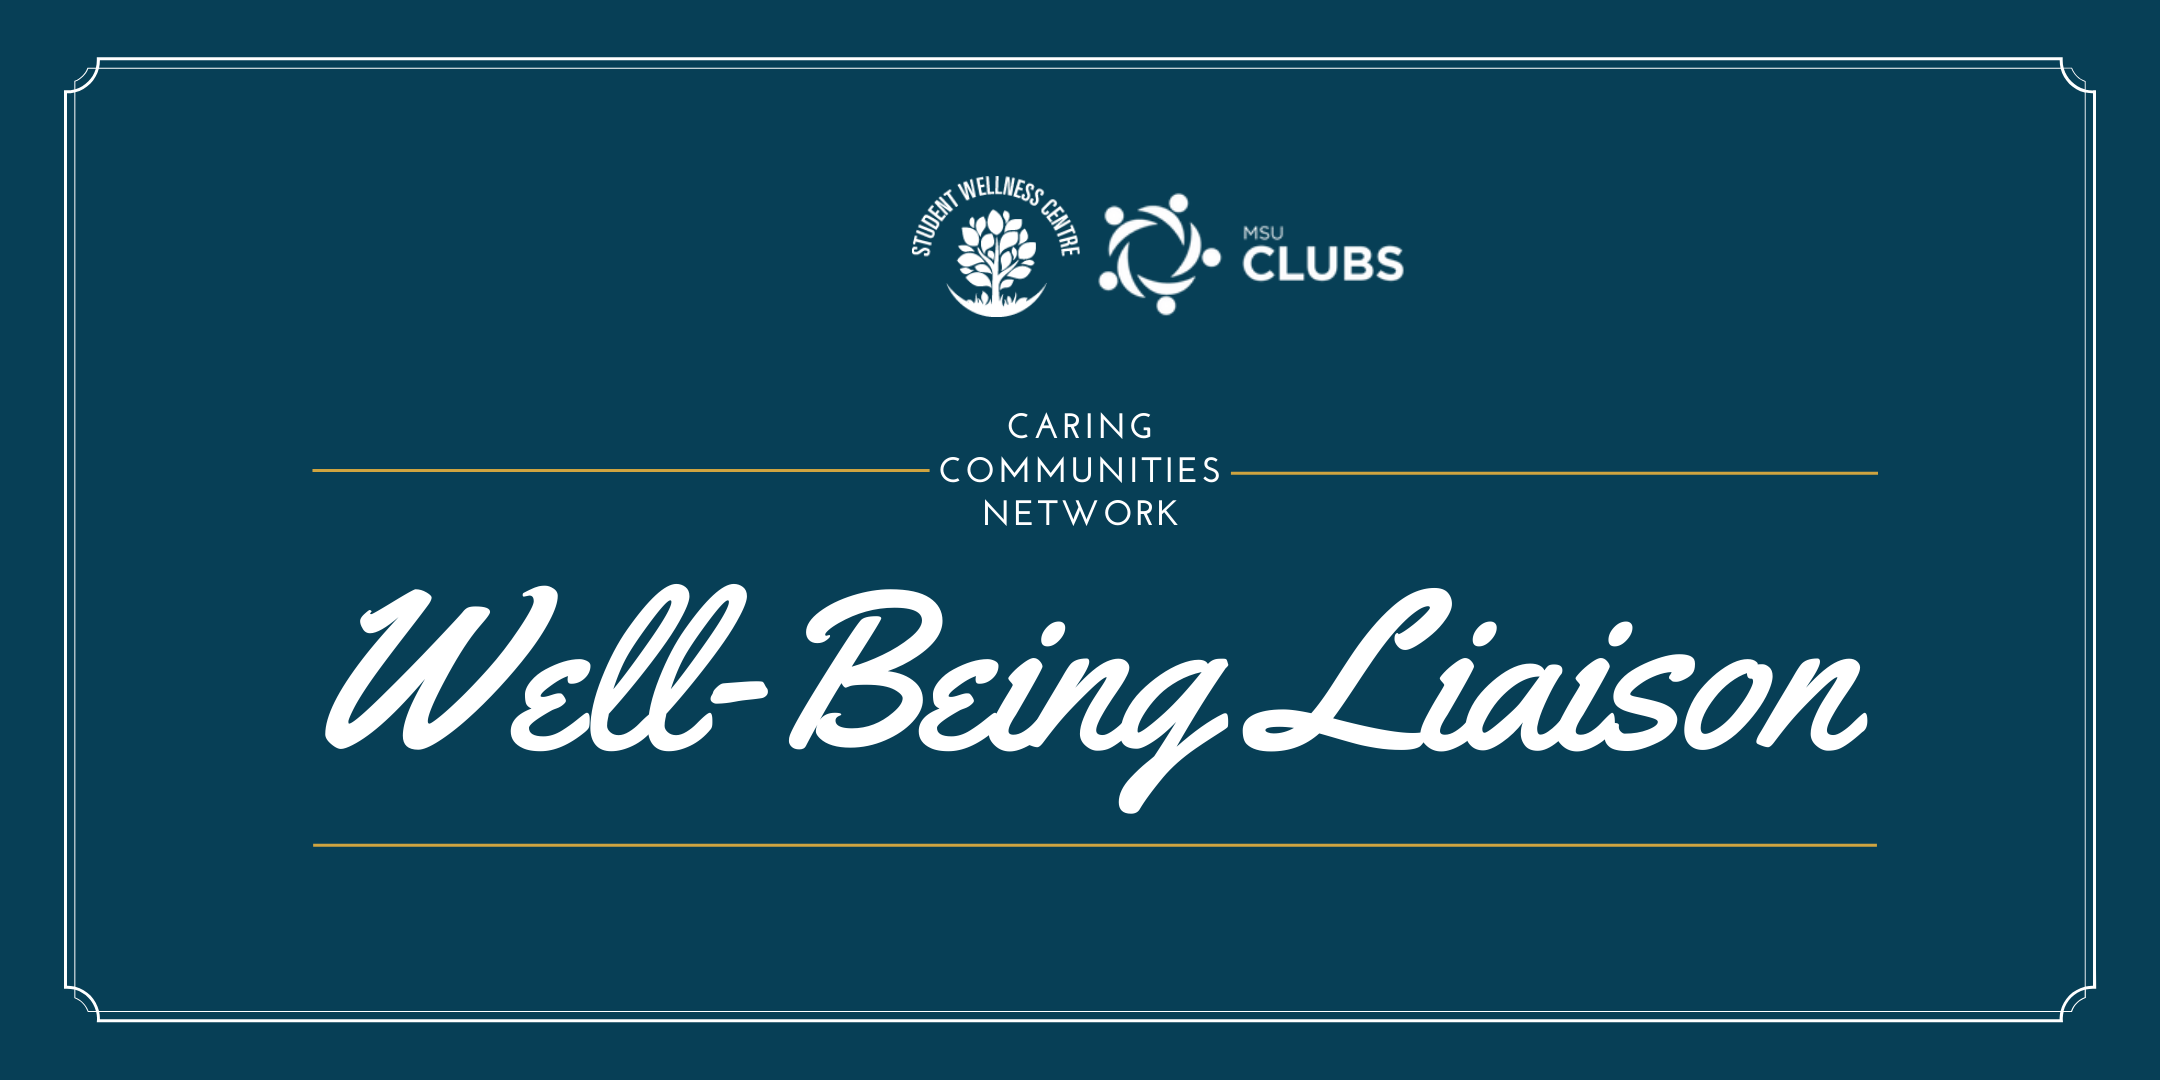 Caring Communities Network: Well-Being Liaison